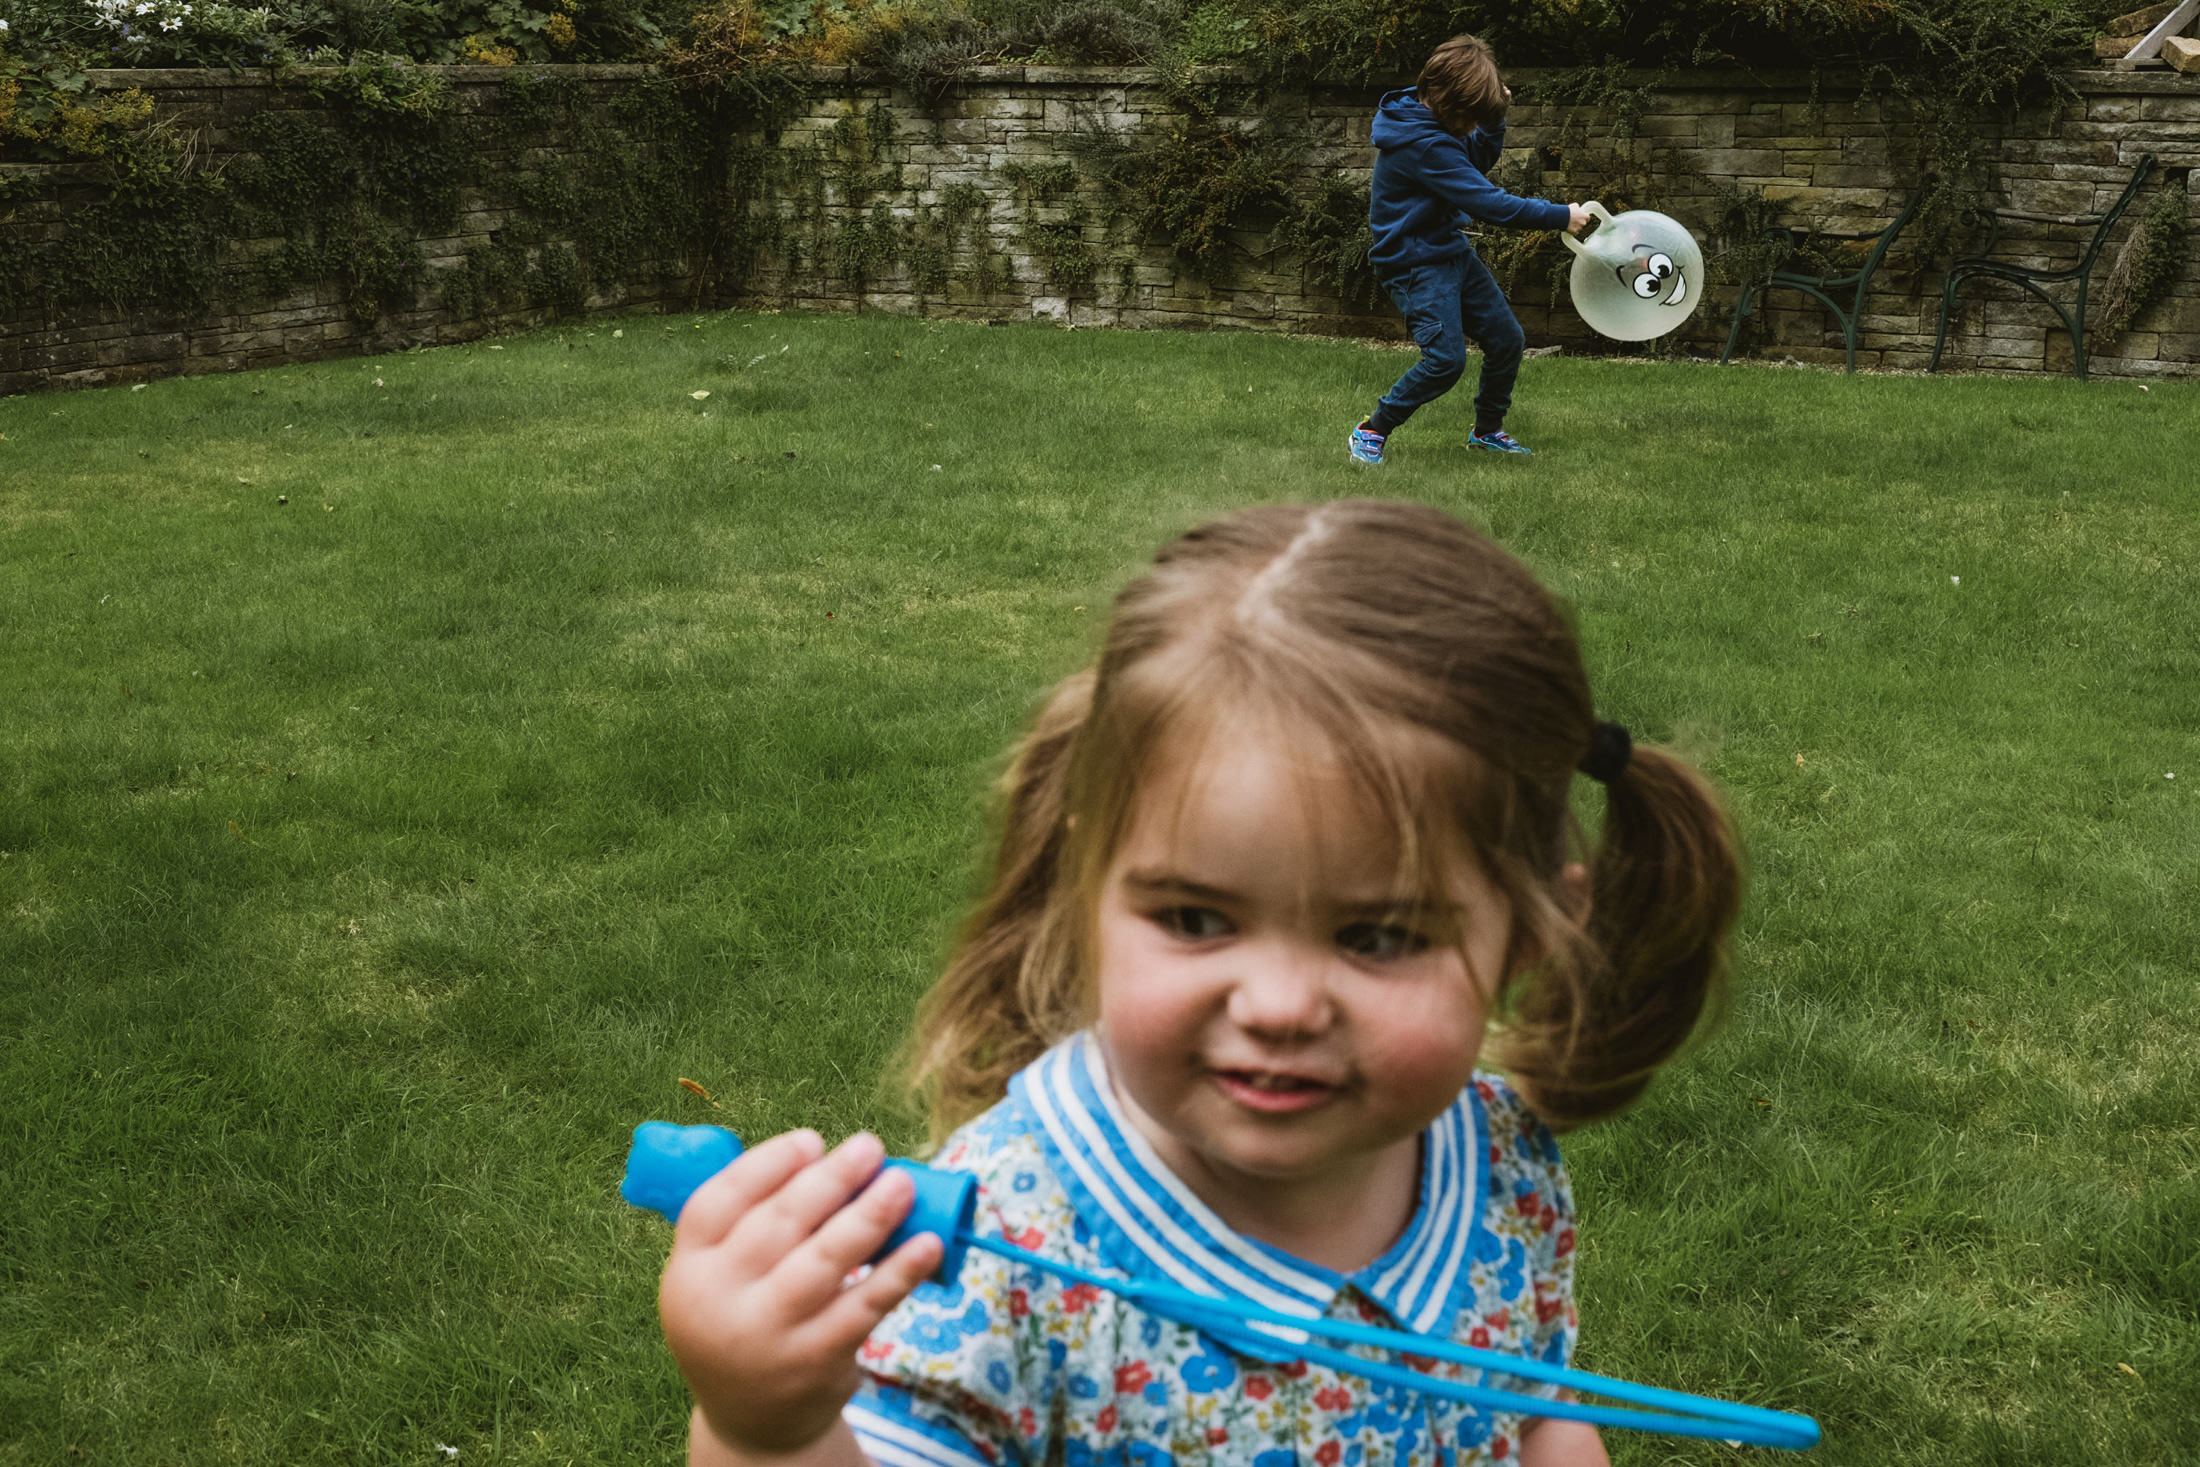 little girl blowing bubbles, young boy playing with bouncer. Documentary family photography